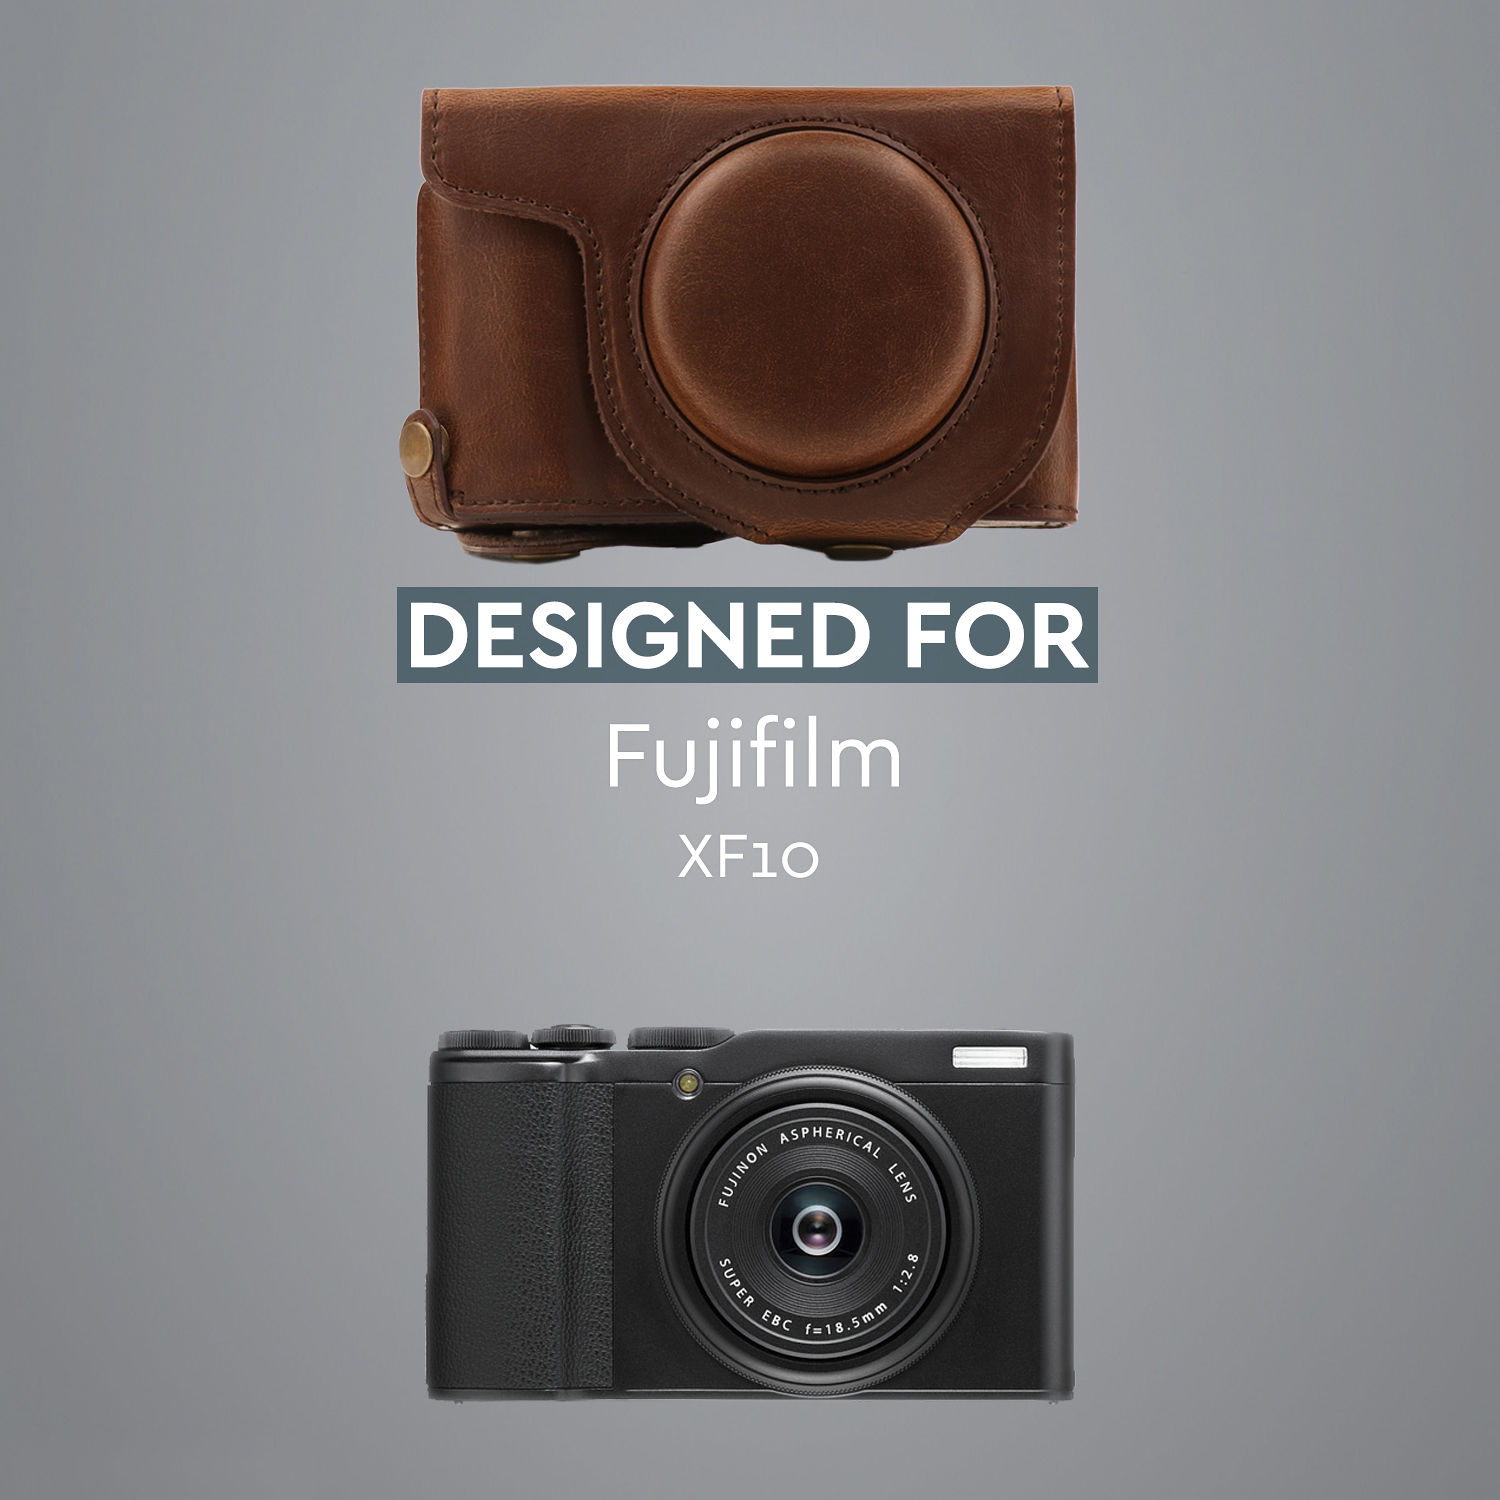 MegaGear Fujifilm XF10 Ever Ready Leather Camera Case and Strap